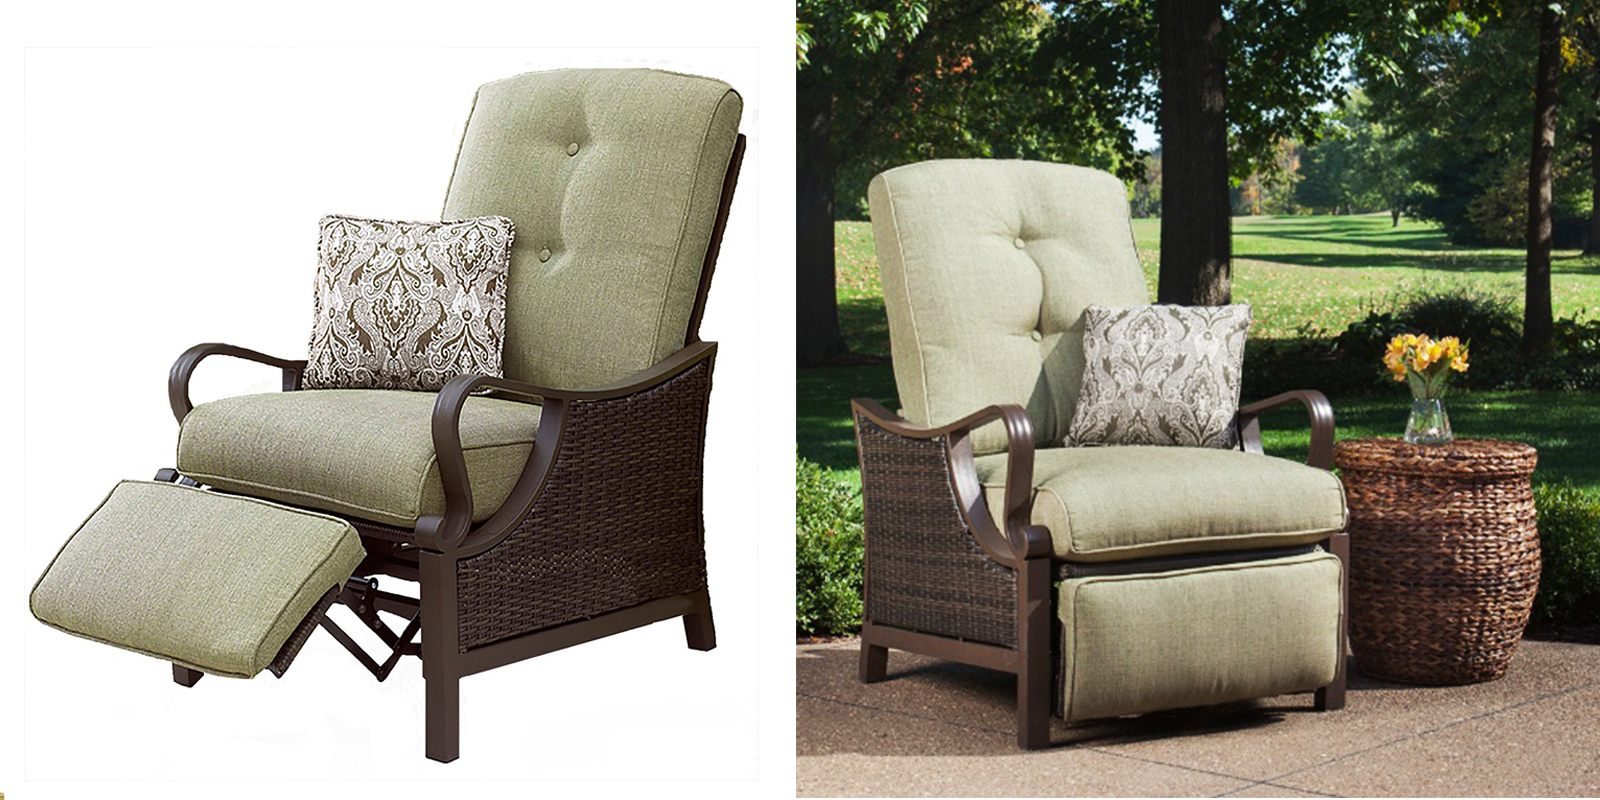 best patio chairs chair covers and linens indianapolis 25 to buy right now